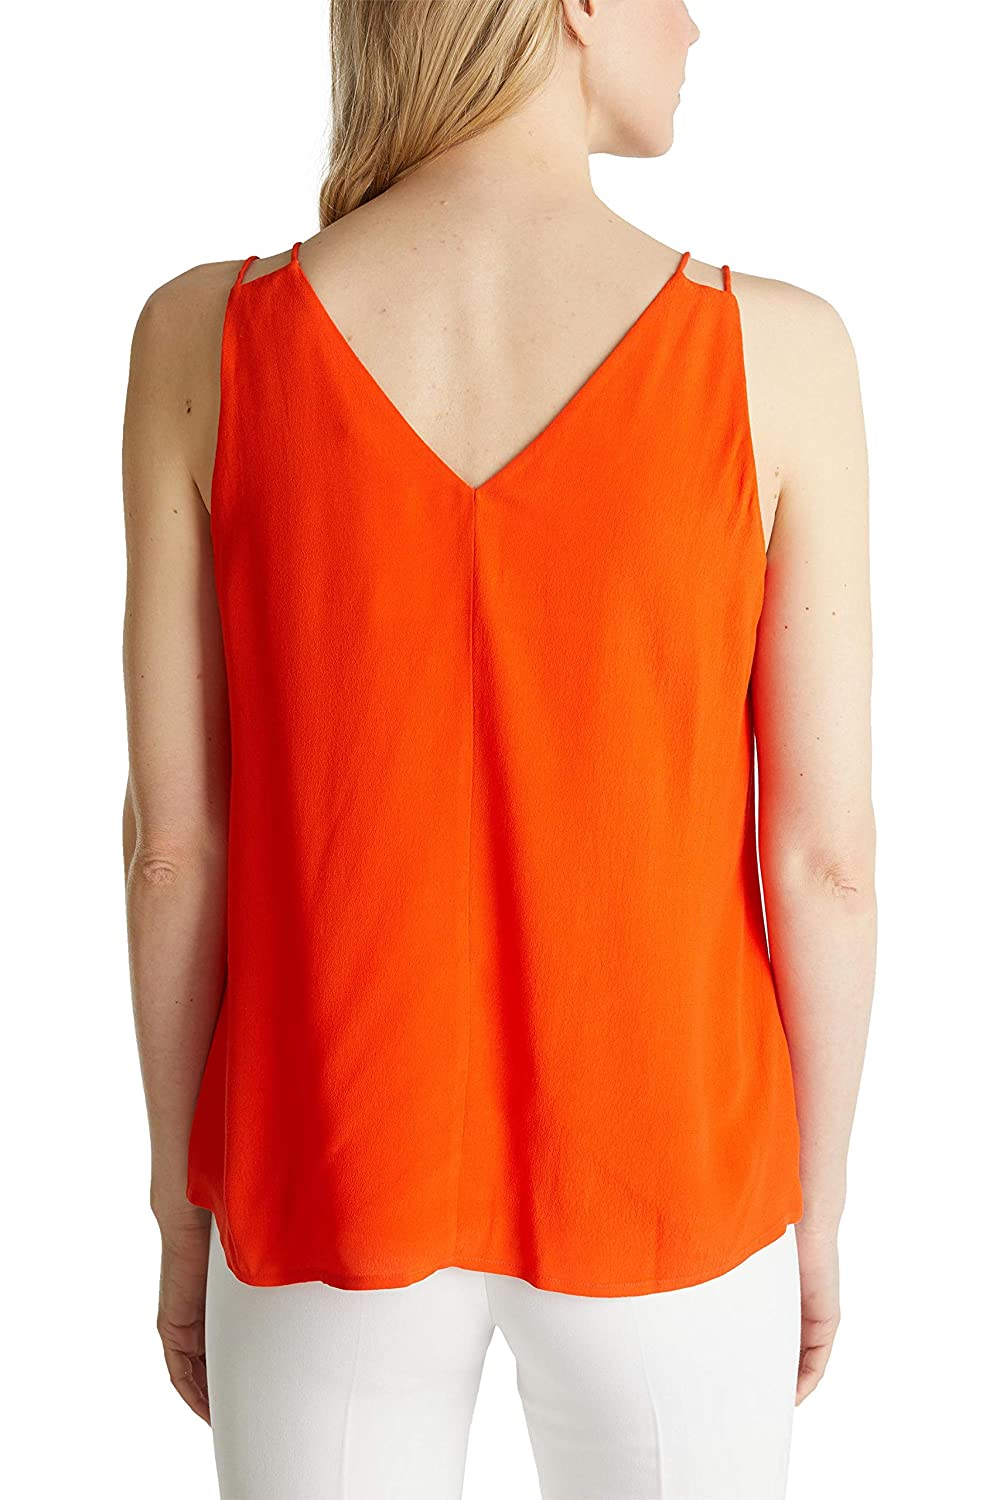 ESPRIT kollektion dam blus 825/Red Orange